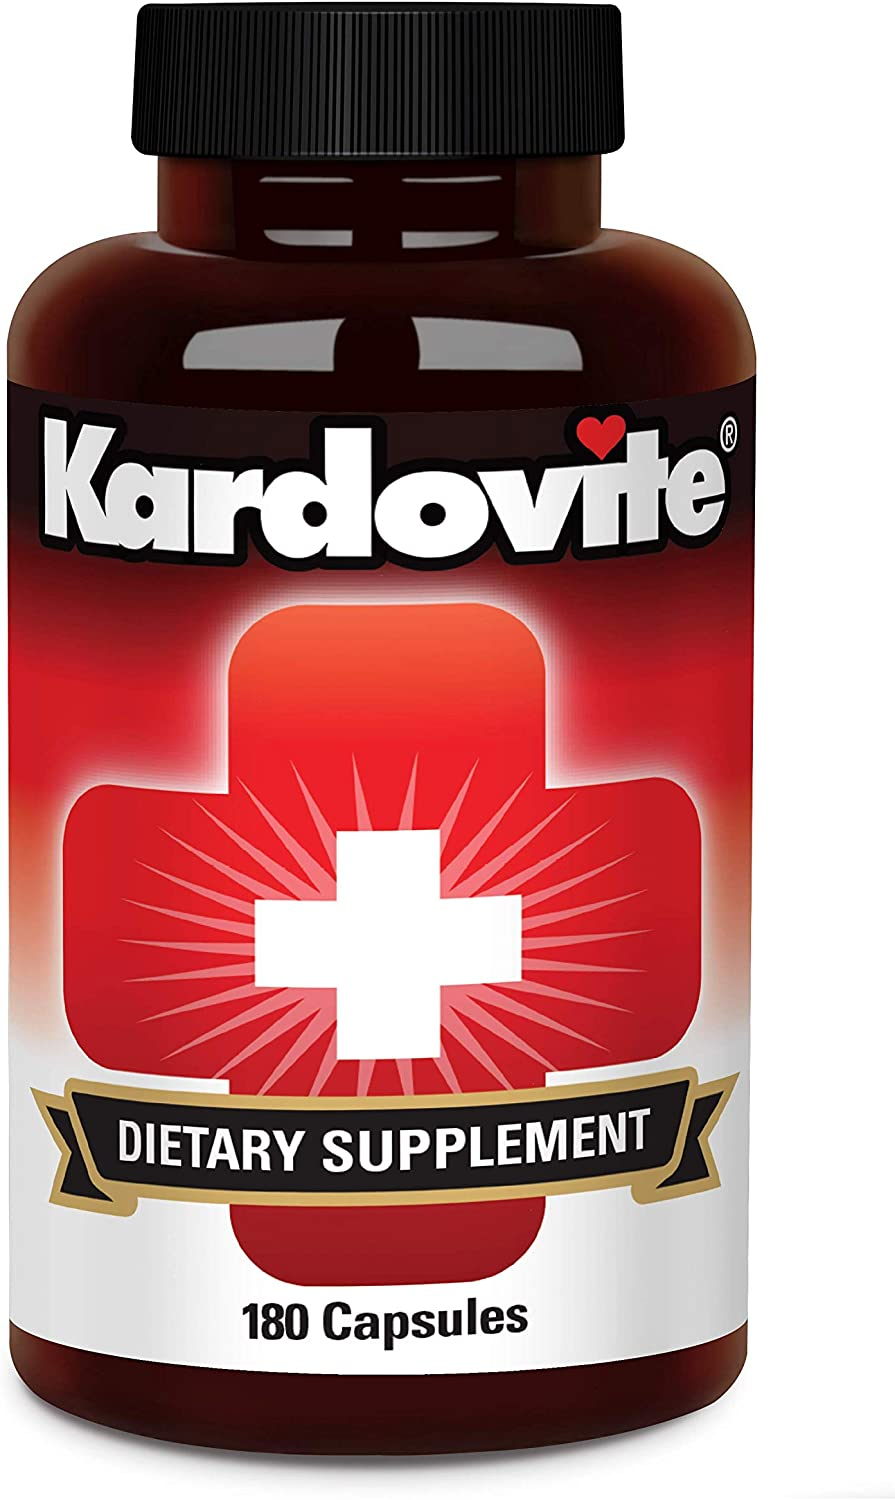 Kardovite Herbal Cardiovascular Supplement - Natural Support for Improved Circulation and Already Normal Blood Pressure - 180 Capsules